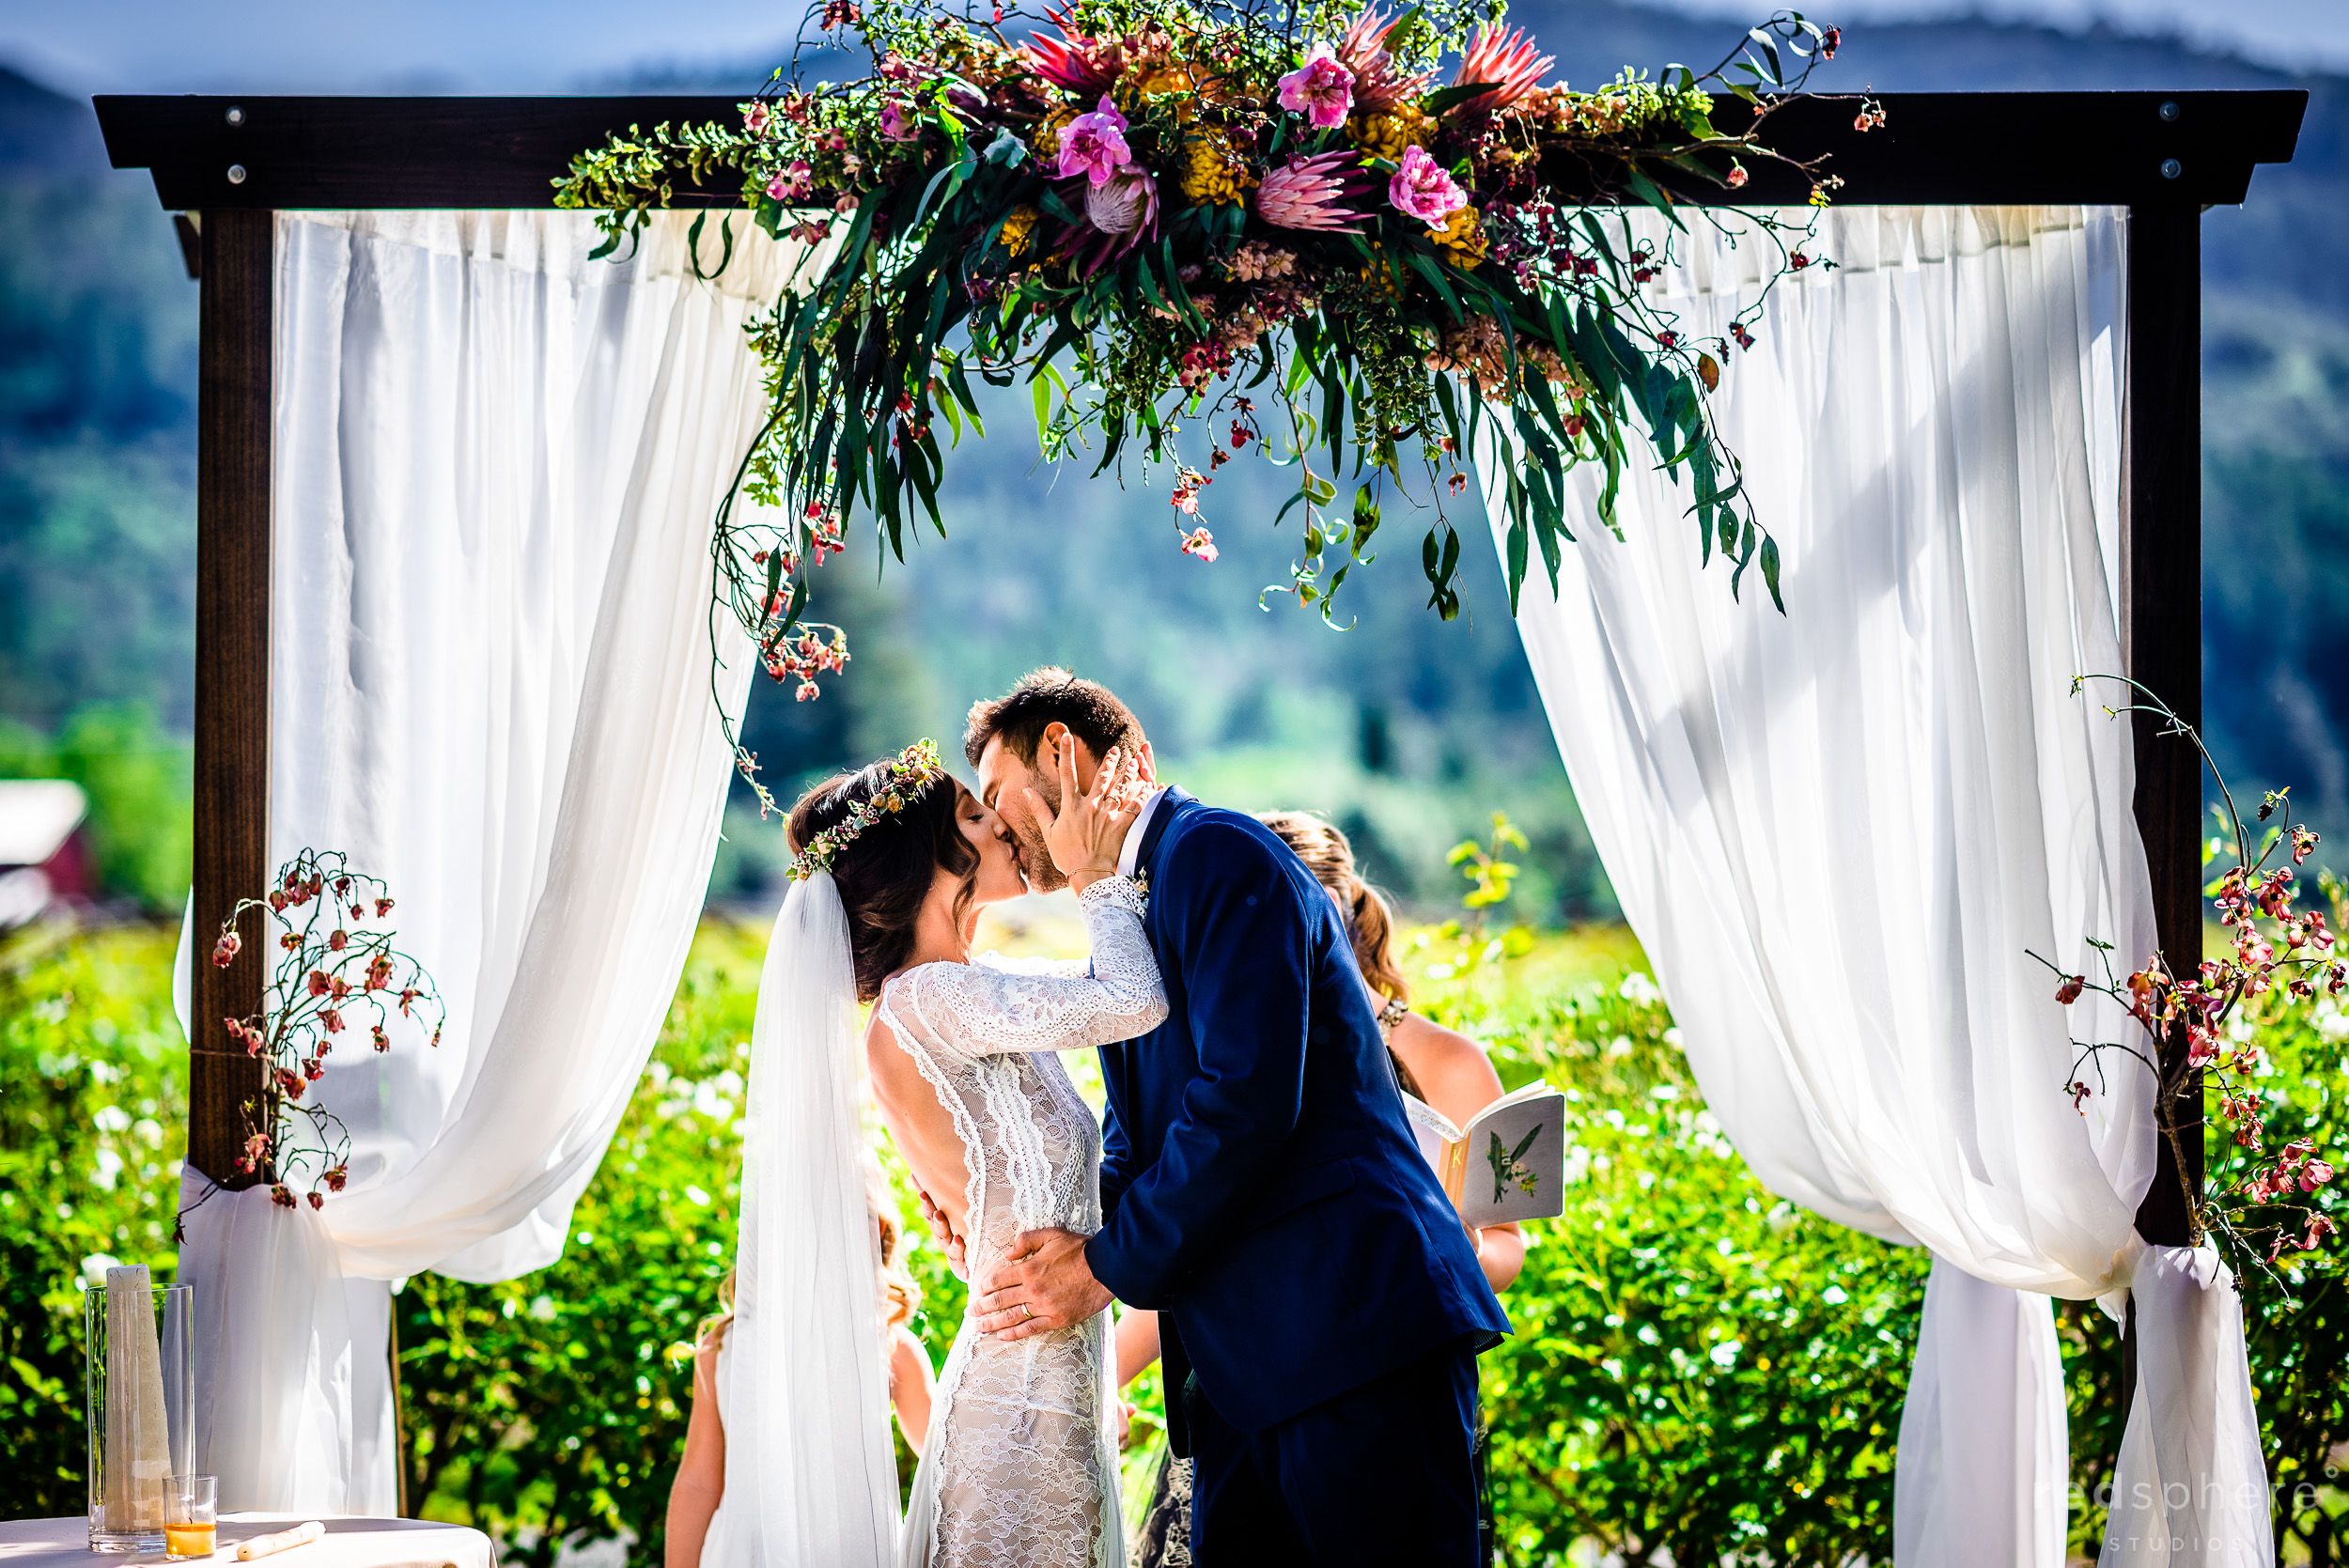 First kiss wedding ceremony at Harvest Inn By Charlie Palmer, St. Helena, Napa Valley